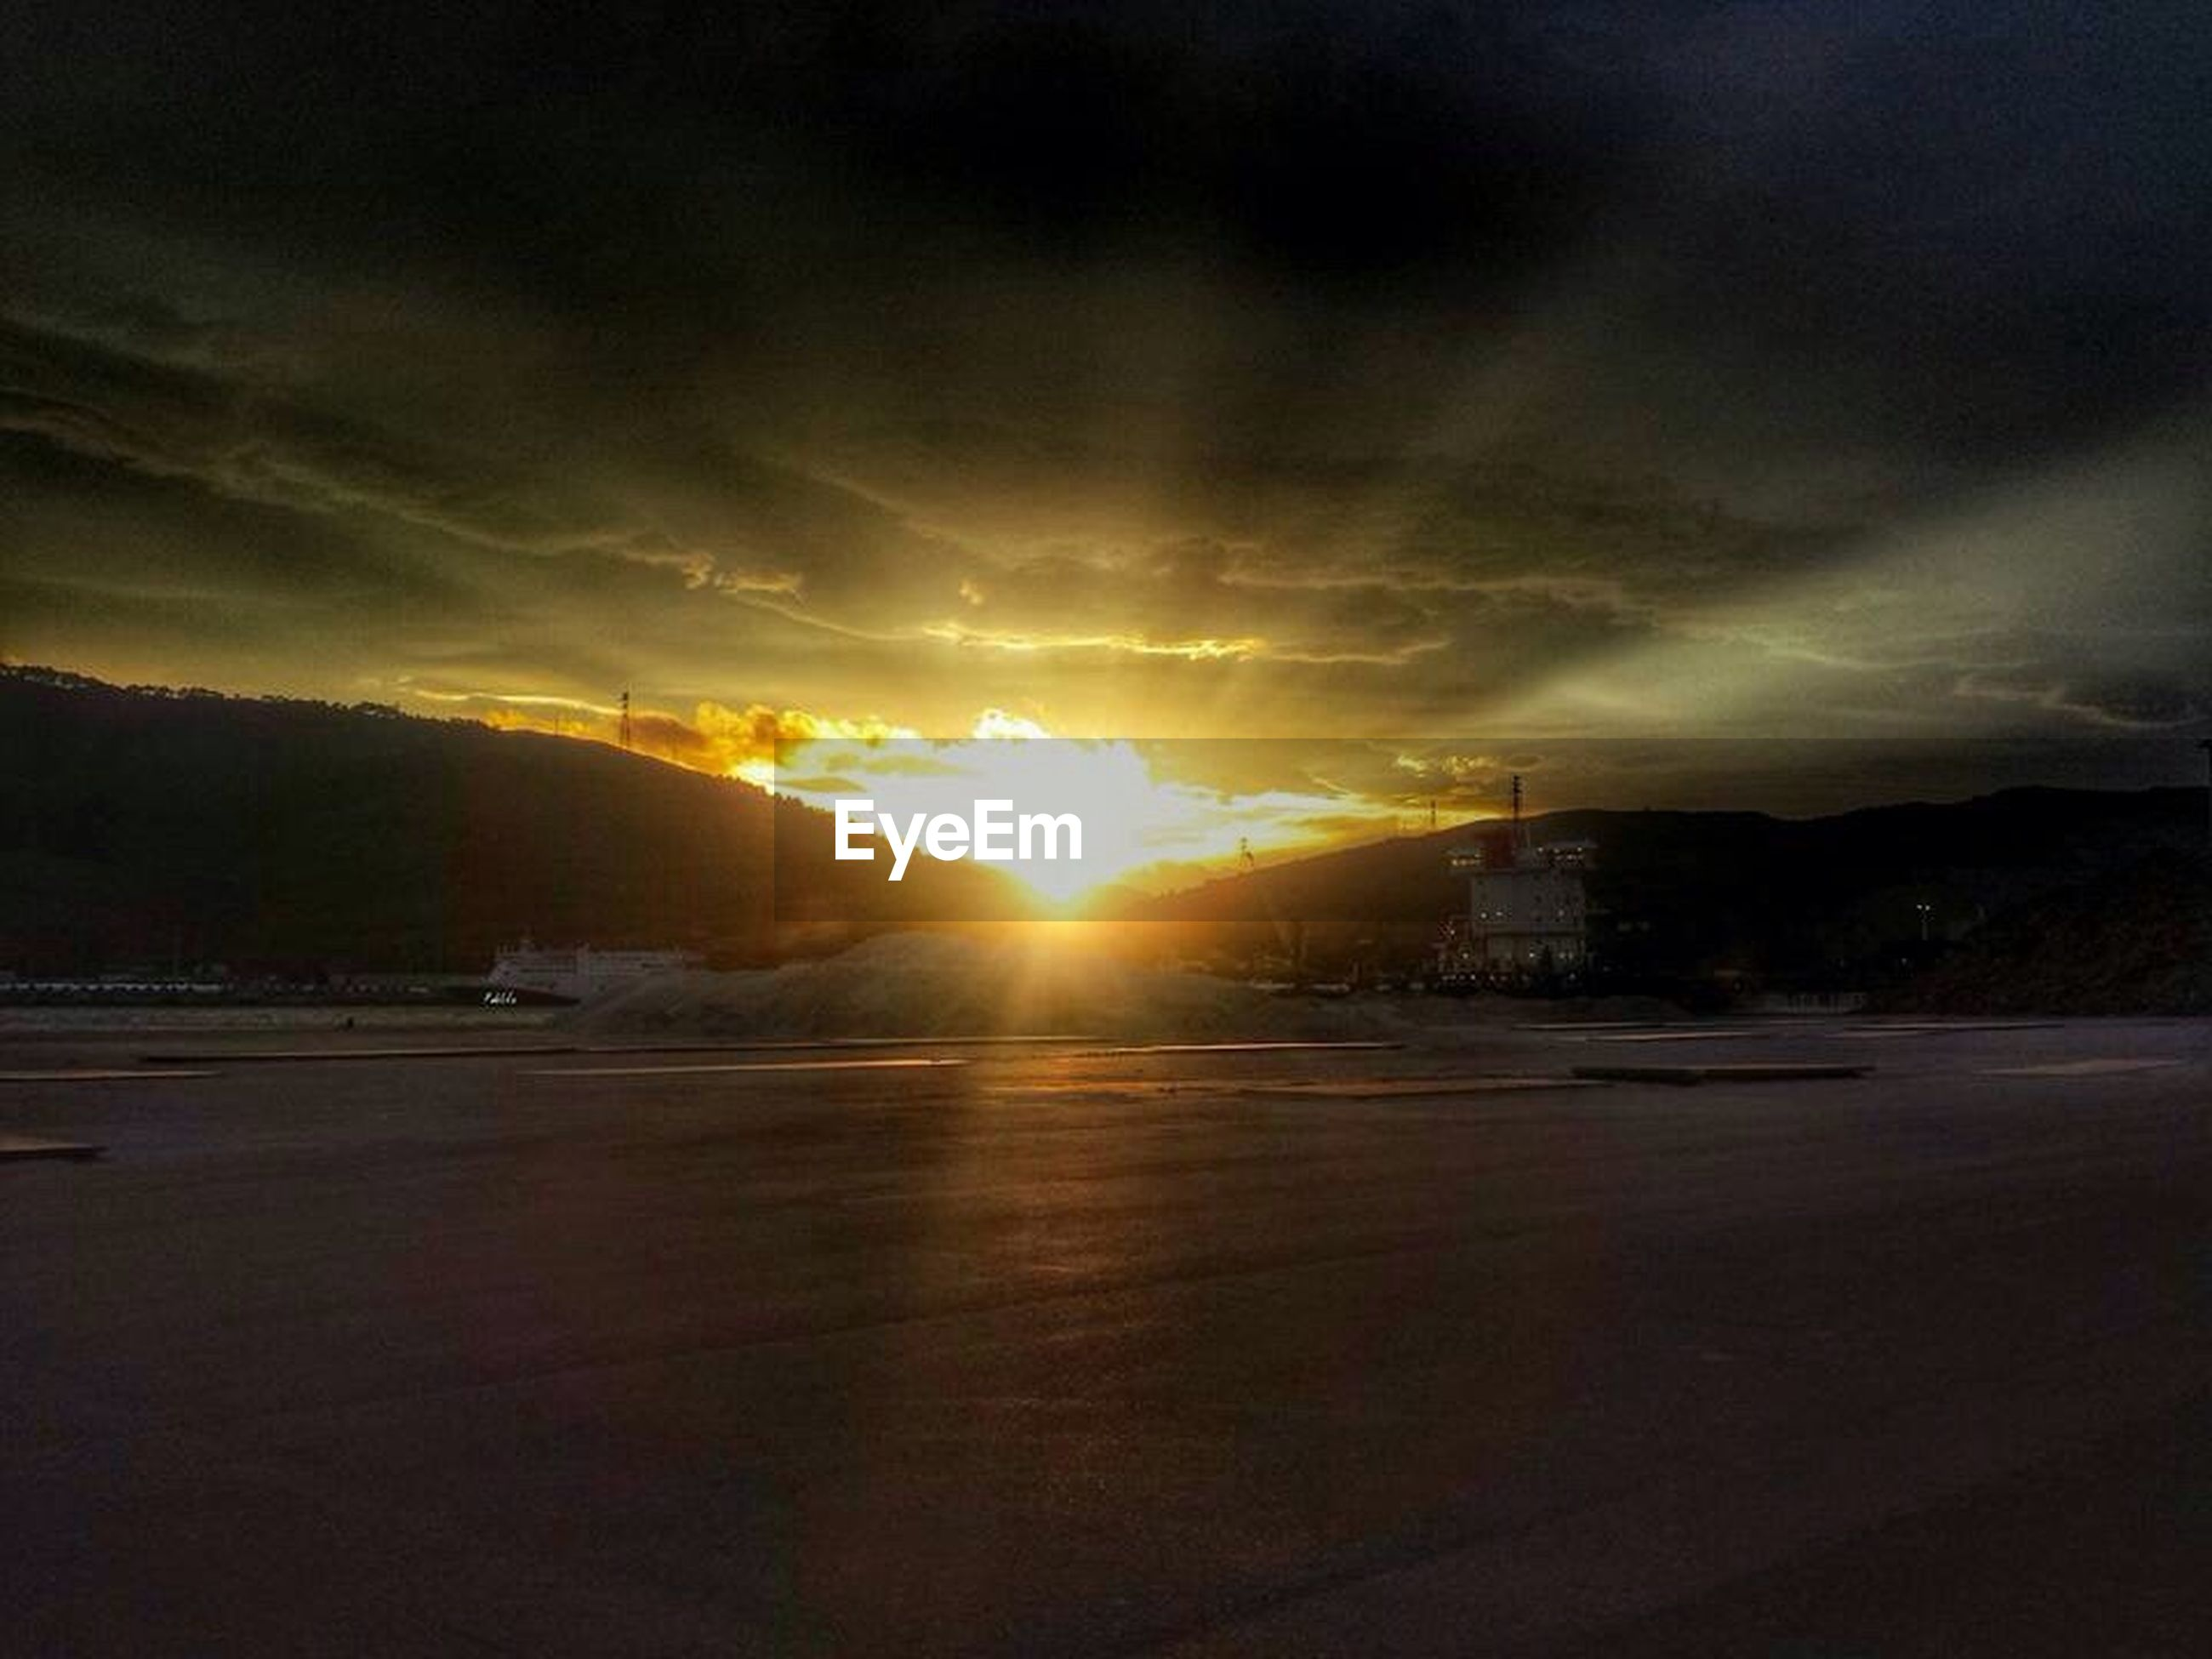 sunset, mountain, sun, building exterior, sky, cloud, architecture, cloud - sky, sunbeam, tranquil scene, water, scenics, tranquility, beauty in nature, outdoors, nature, mountain range, dramatic sky, lens flare, storm cloud, majestic, cloudy